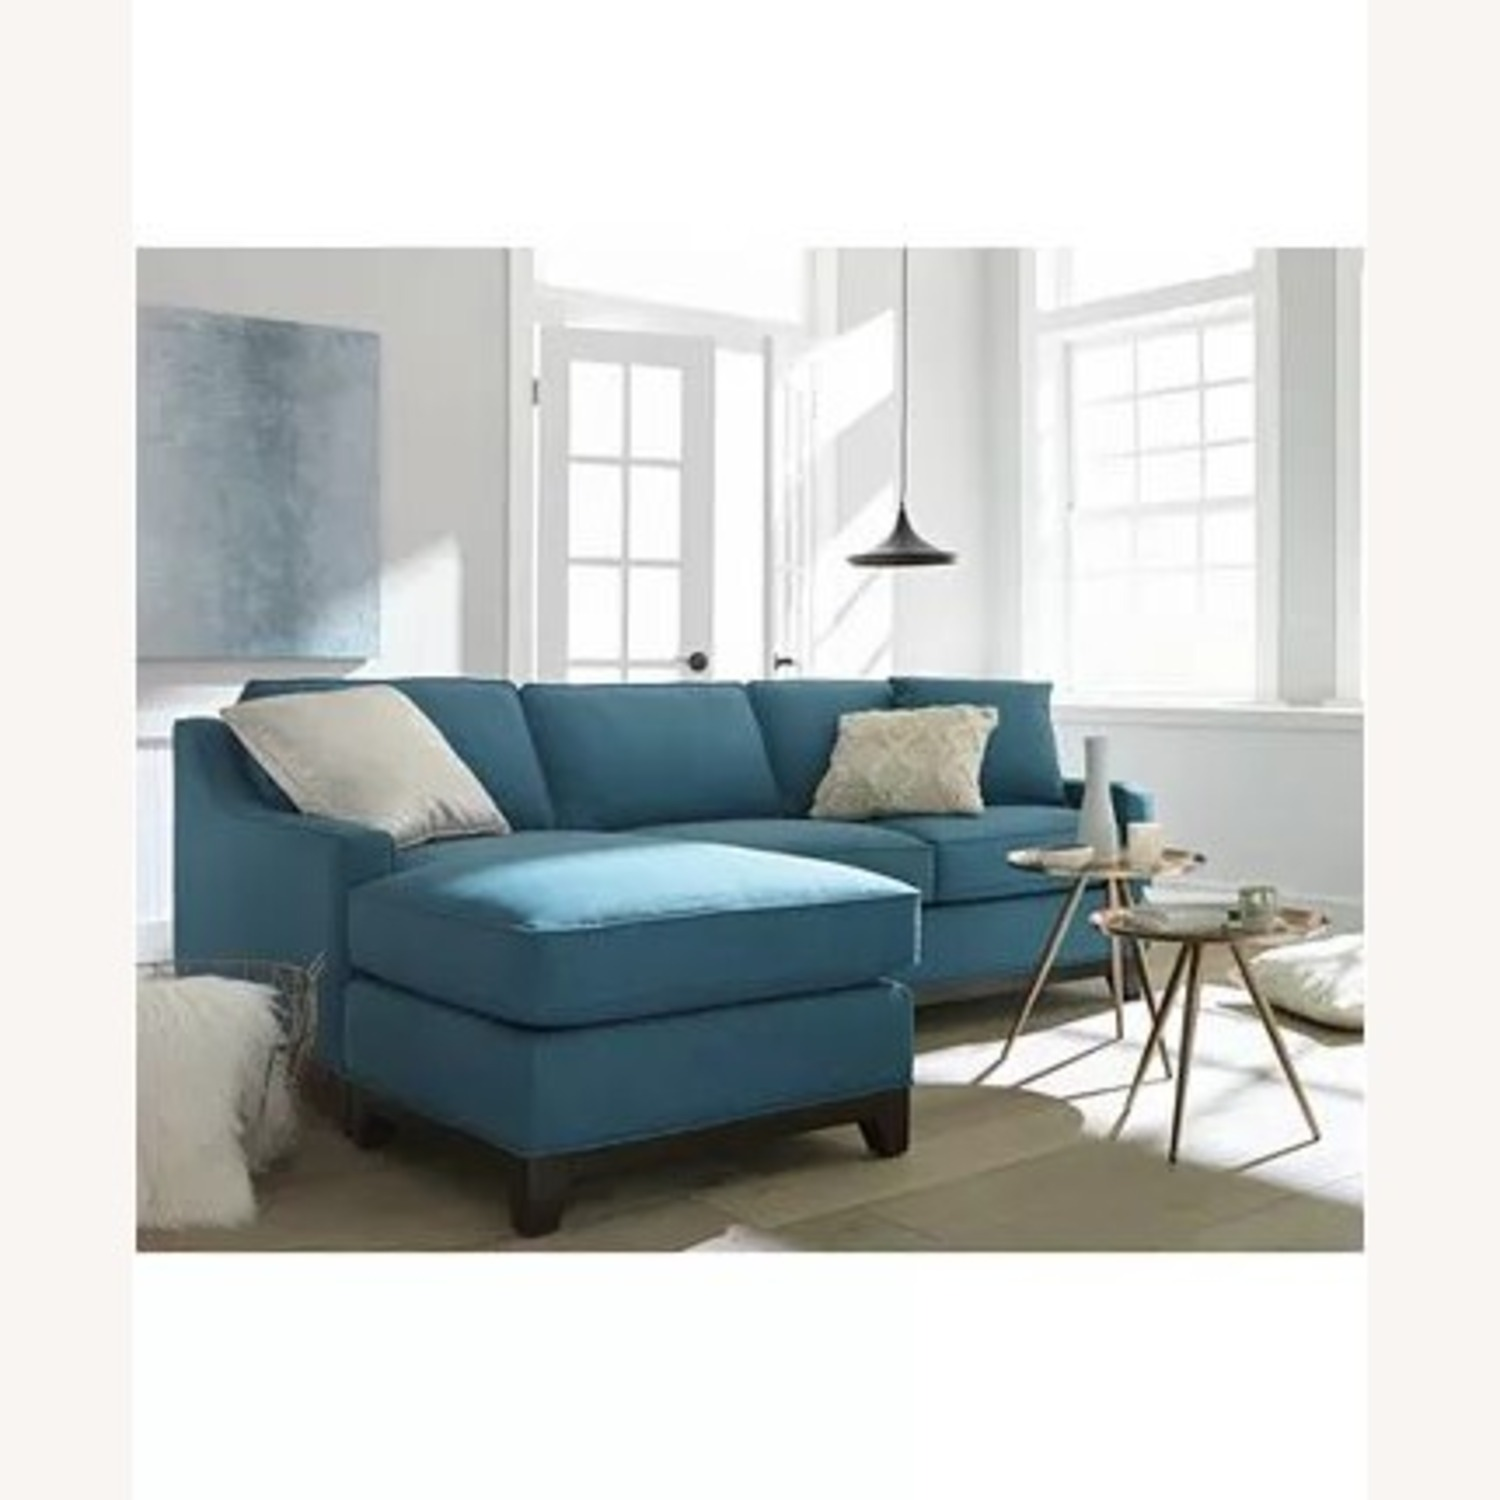 "Macy's Keegan 90"" 2-Piece Reversible Chaise Sectional - image-1"